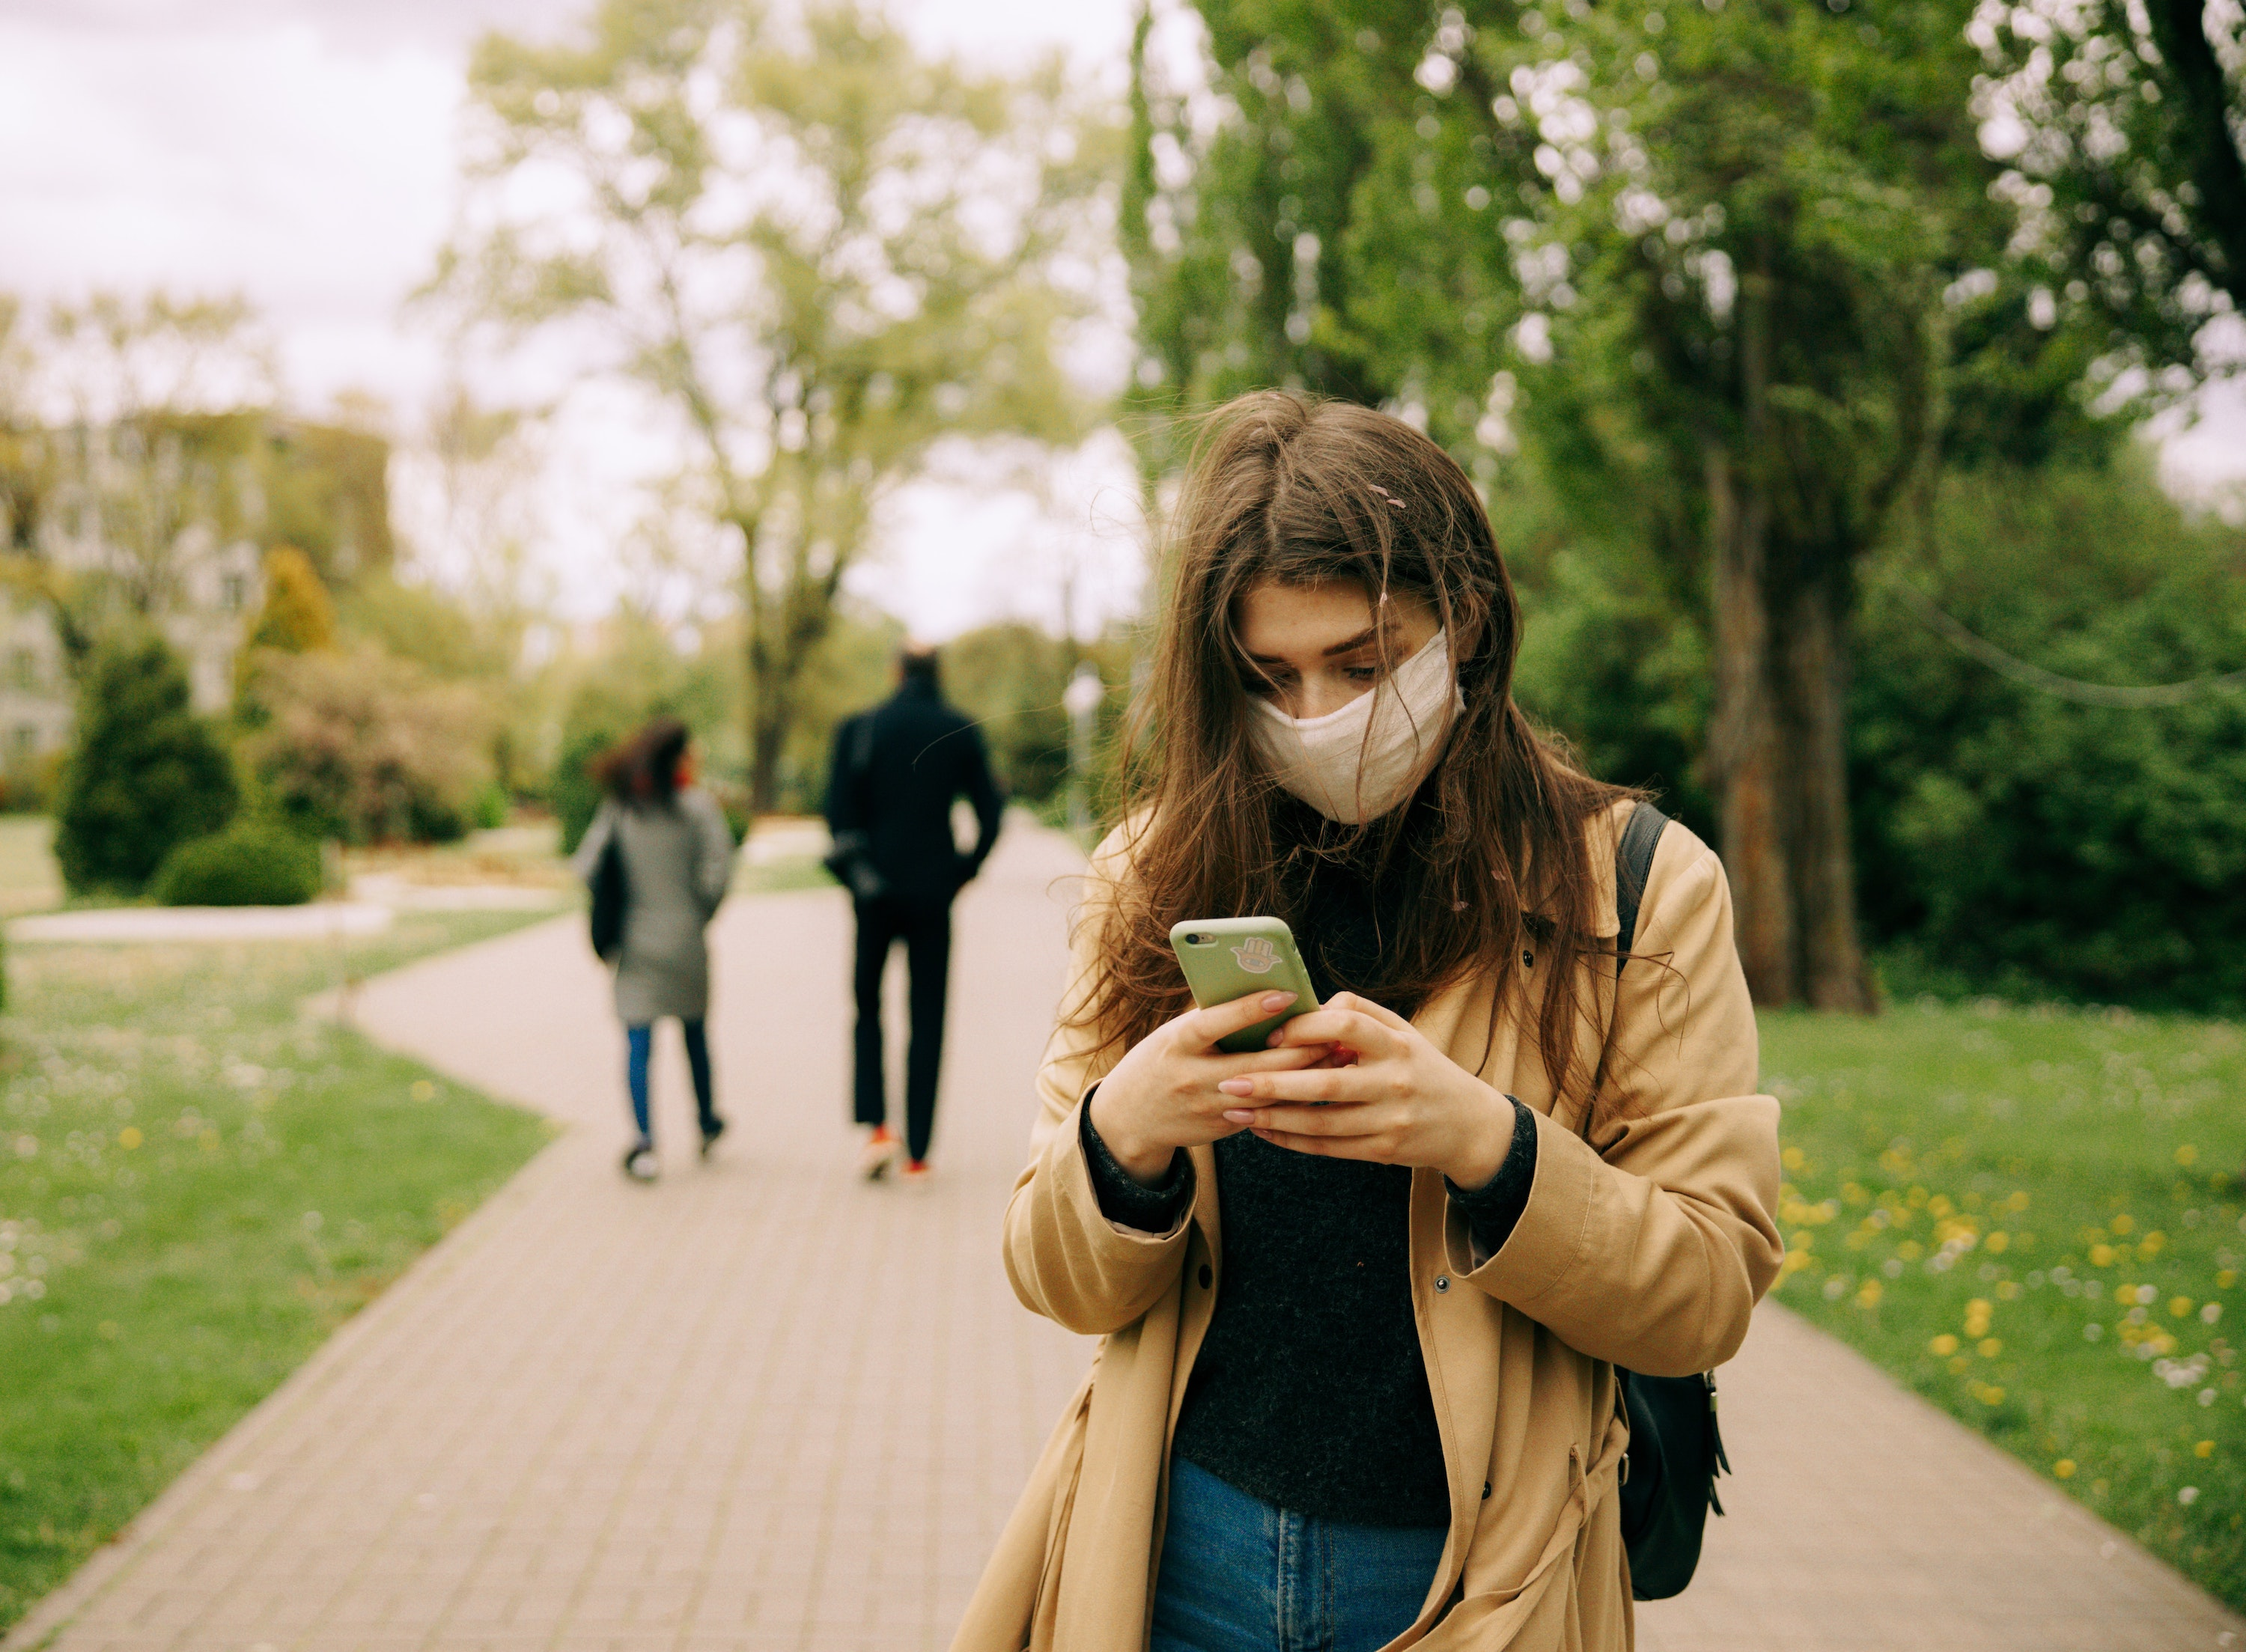 Woman on smartphone wearing face mask, with two people walking away in the background.